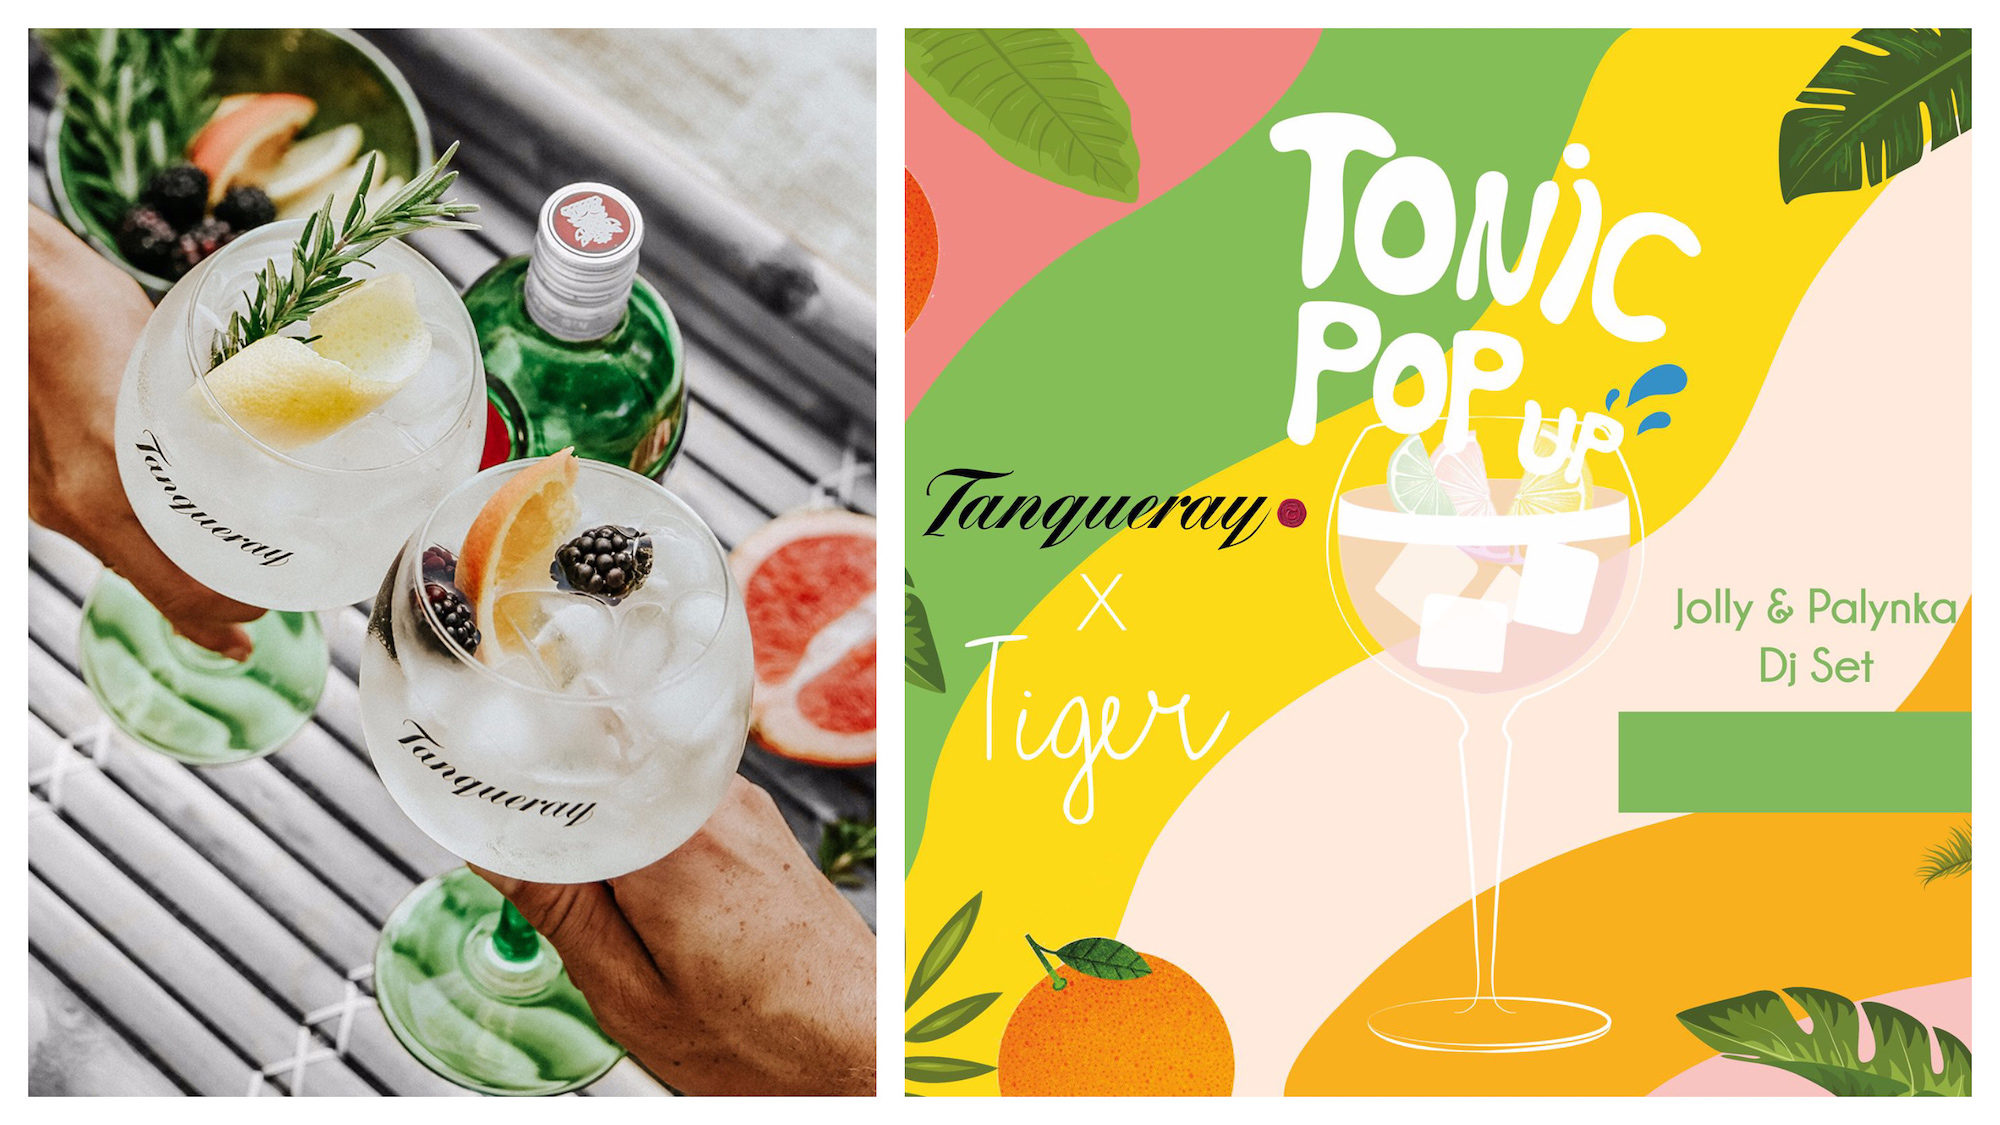 Two glasses of Tanqueray with fresh and fruity cocktails (left) and a poster for Tanqueray's event at Tiget cocktail bar in Paris this summer (right).